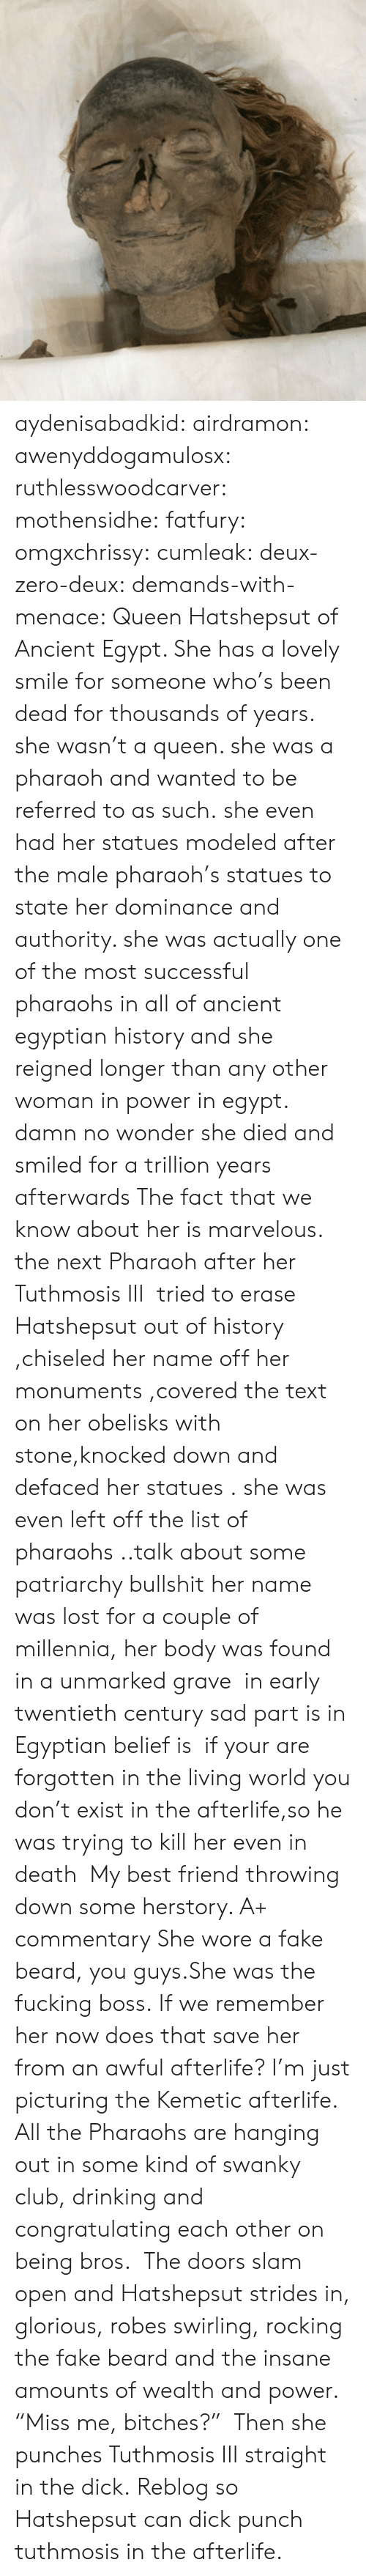 "pharaoh: aydenisabadkid:  airdramon:  awenyddogamulosx:  ruthlesswoodcarver:  mothensidhe:  fatfury:  omgxchrissy:  cumleak:  deux-zero-deux:  demands-with-menace:  Queen Hatshepsut of Ancient Egypt. She has a lovely smile for someone who's been dead for thousands of years.  she wasn't a queen. she was a pharaoh and wanted to be referred to as such. she even had her statues modeled after the male pharaoh's statues to state her dominance and authority. she was actually one of the most successful pharaohs in all of ancient egyptian history and she reigned longer than any other woman in power in egypt.  damn no wonder she died and smiled for a trillion years afterwards  The fact that we know about her is marvelous. the next Pharaoh after her Tuthmosis III  tried to erase Hatshepsut out of history ,chiseled her name off her monuments ,covered the text on her obelisks with stone,knocked down and defaced her statues . she was even left off the list of pharaohs ..talk about some patriarchy bullshit her name was lost for a couple of millennia, her body was found in a unmarked grave  in early twentieth century sad part is in Egyptian belief is  if your are forgotten in the living world you don't exist in the afterlife,so he was trying to kill her even in death   My best friend throwing down some herstory. A+ commentary  She wore a fake beard, you guys.She was the fucking boss.  If we remember her now does that save her from an awful afterlife?  I'm just picturing the Kemetic afterlife. All the Pharaohs are hanging out in some kind of swanky club, drinking and congratulating each other on being bros.  The doors slam open and Hatshepsut strides in, glorious, robes swirling, rocking the fake beard and the insane amounts of wealth and power. ""Miss me, bitches?""   Then she punches Tuthmosis III straight in the dick.   Reblog so Hatshepsut can dick punch tuthmosis in the afterlife."